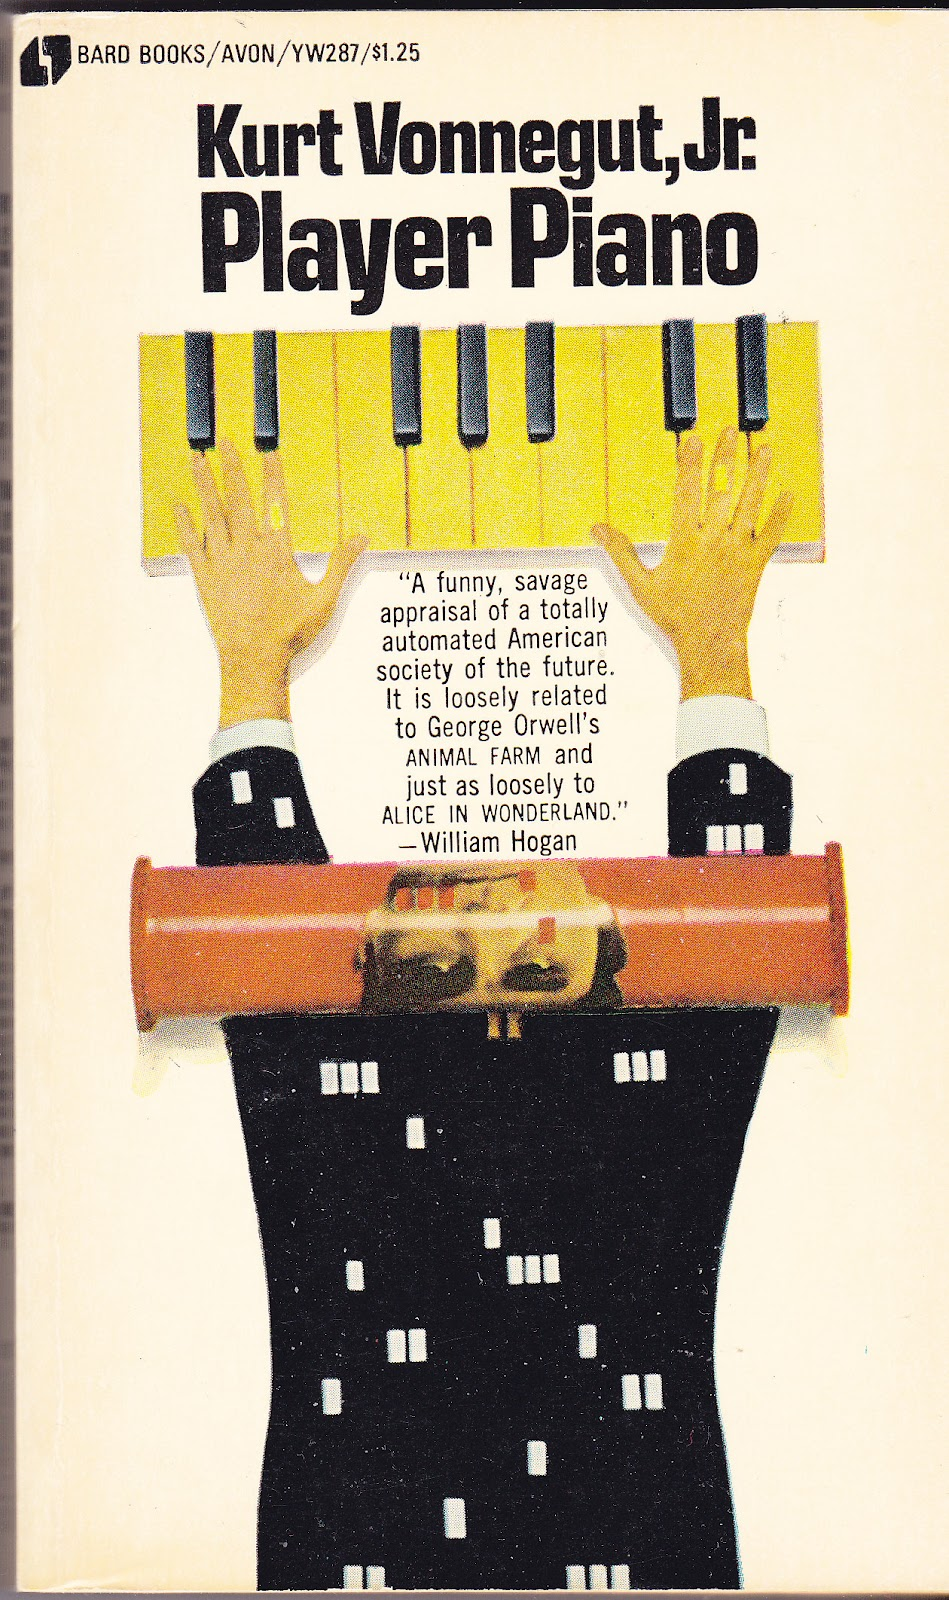 player piano 1952 Every Kurt Vonnegut Novel Ranked in Order of Relevance